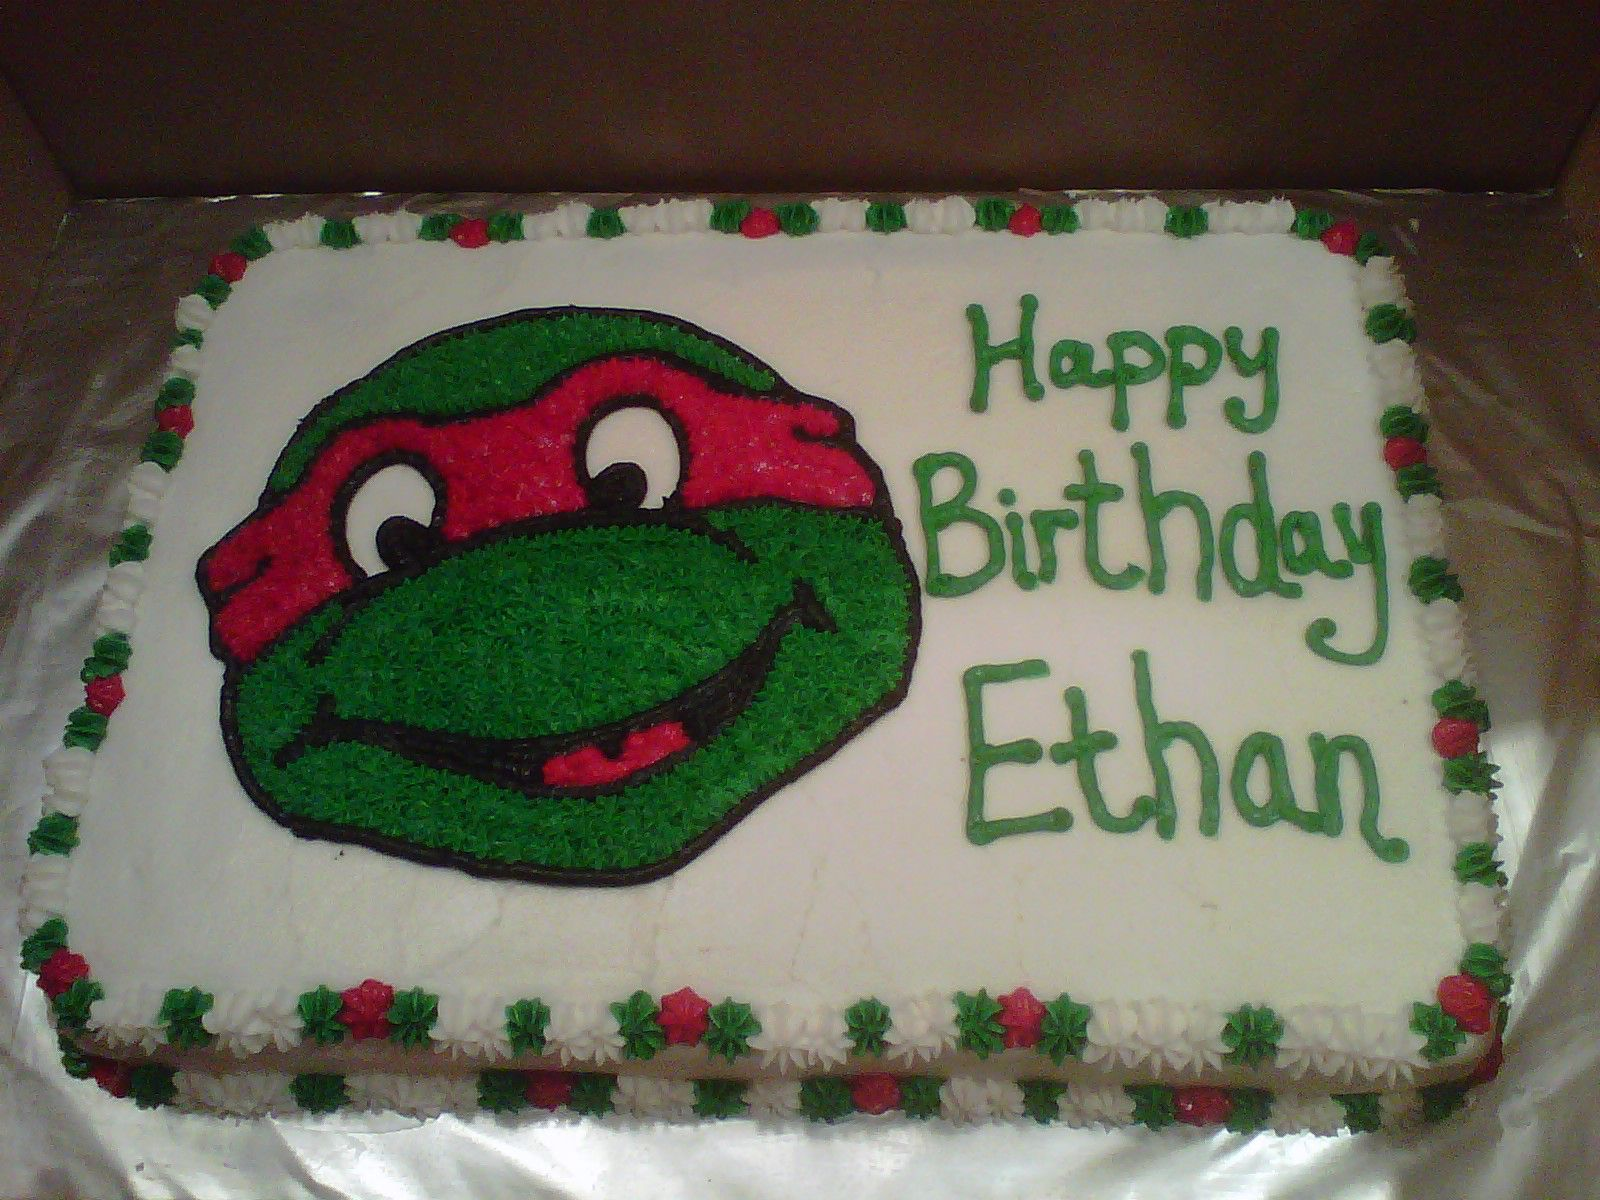 Ninja turtle sheet cake | Cakes I have made | Pinterest ...